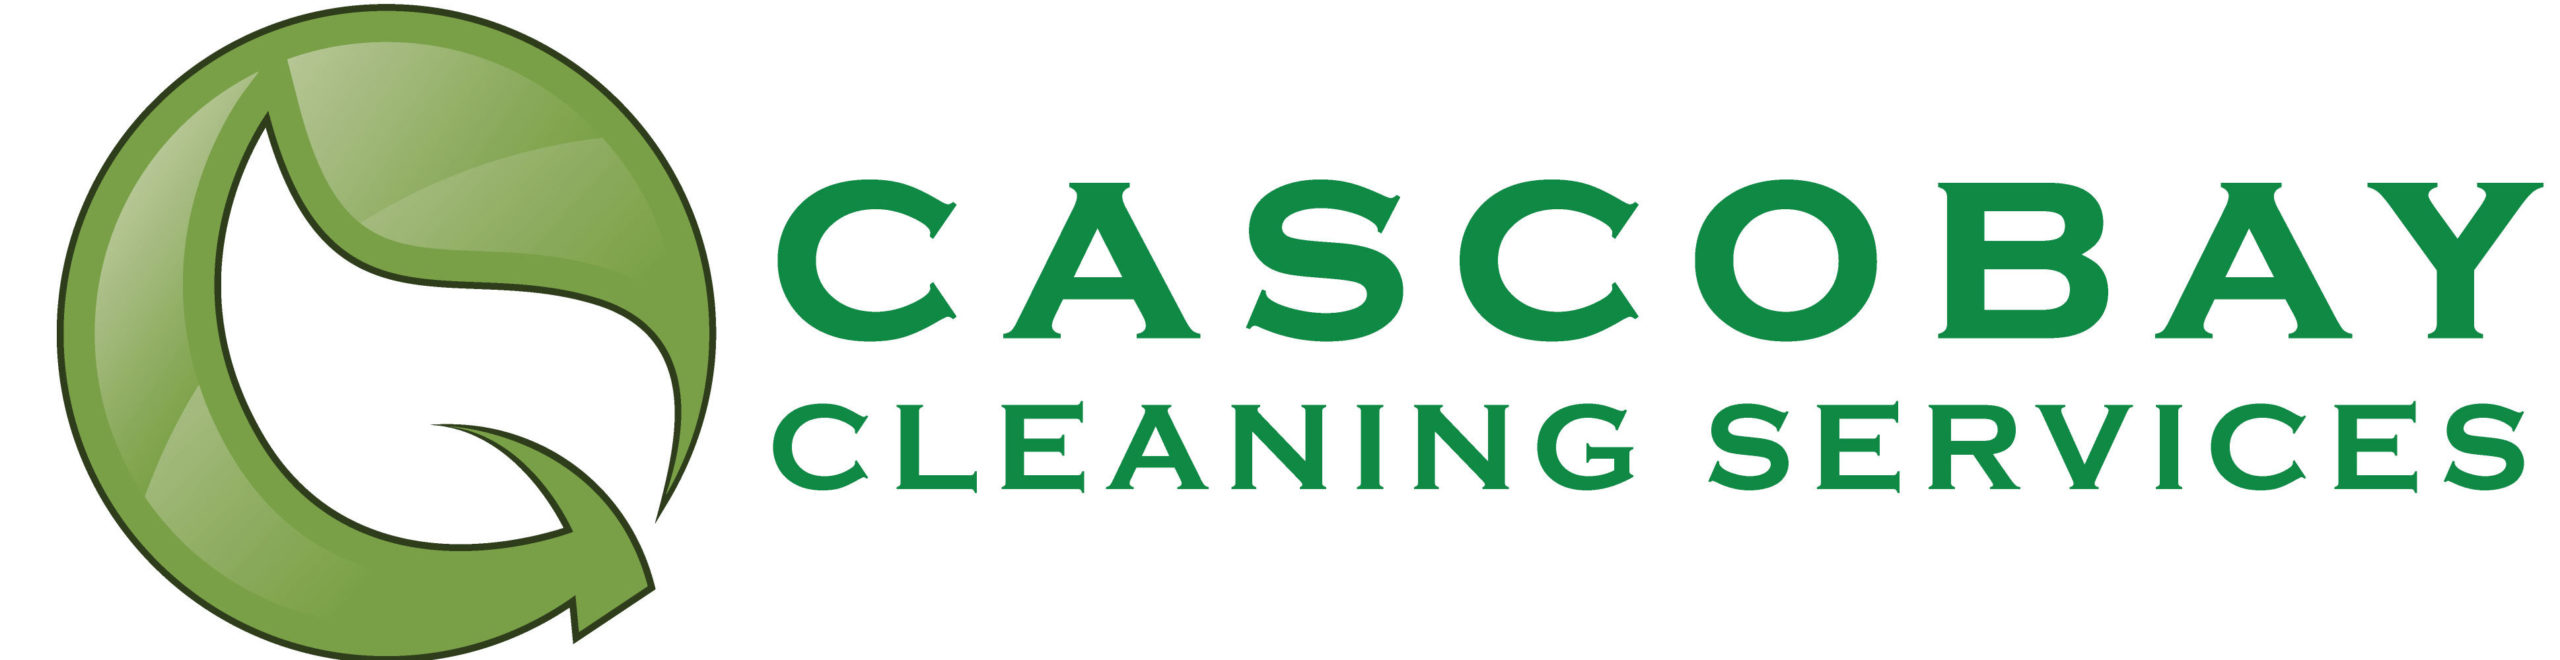 Casco Bay Cleaning